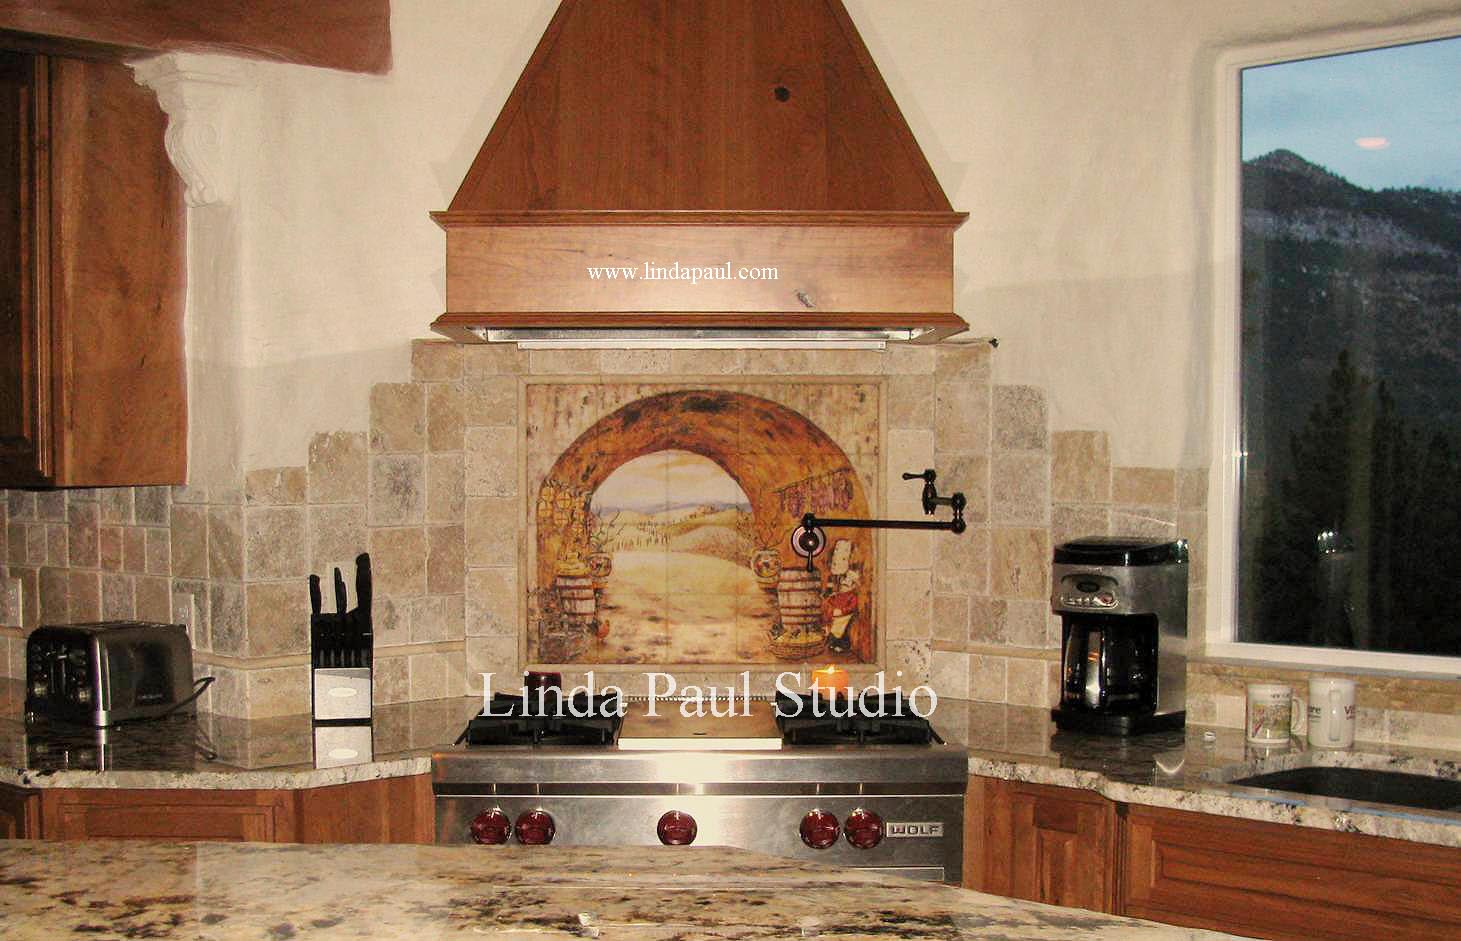 tile Backsplash ideas backsplashes backsplash kitchen Everything tuscany Kitchen backsplash ideas and Installation